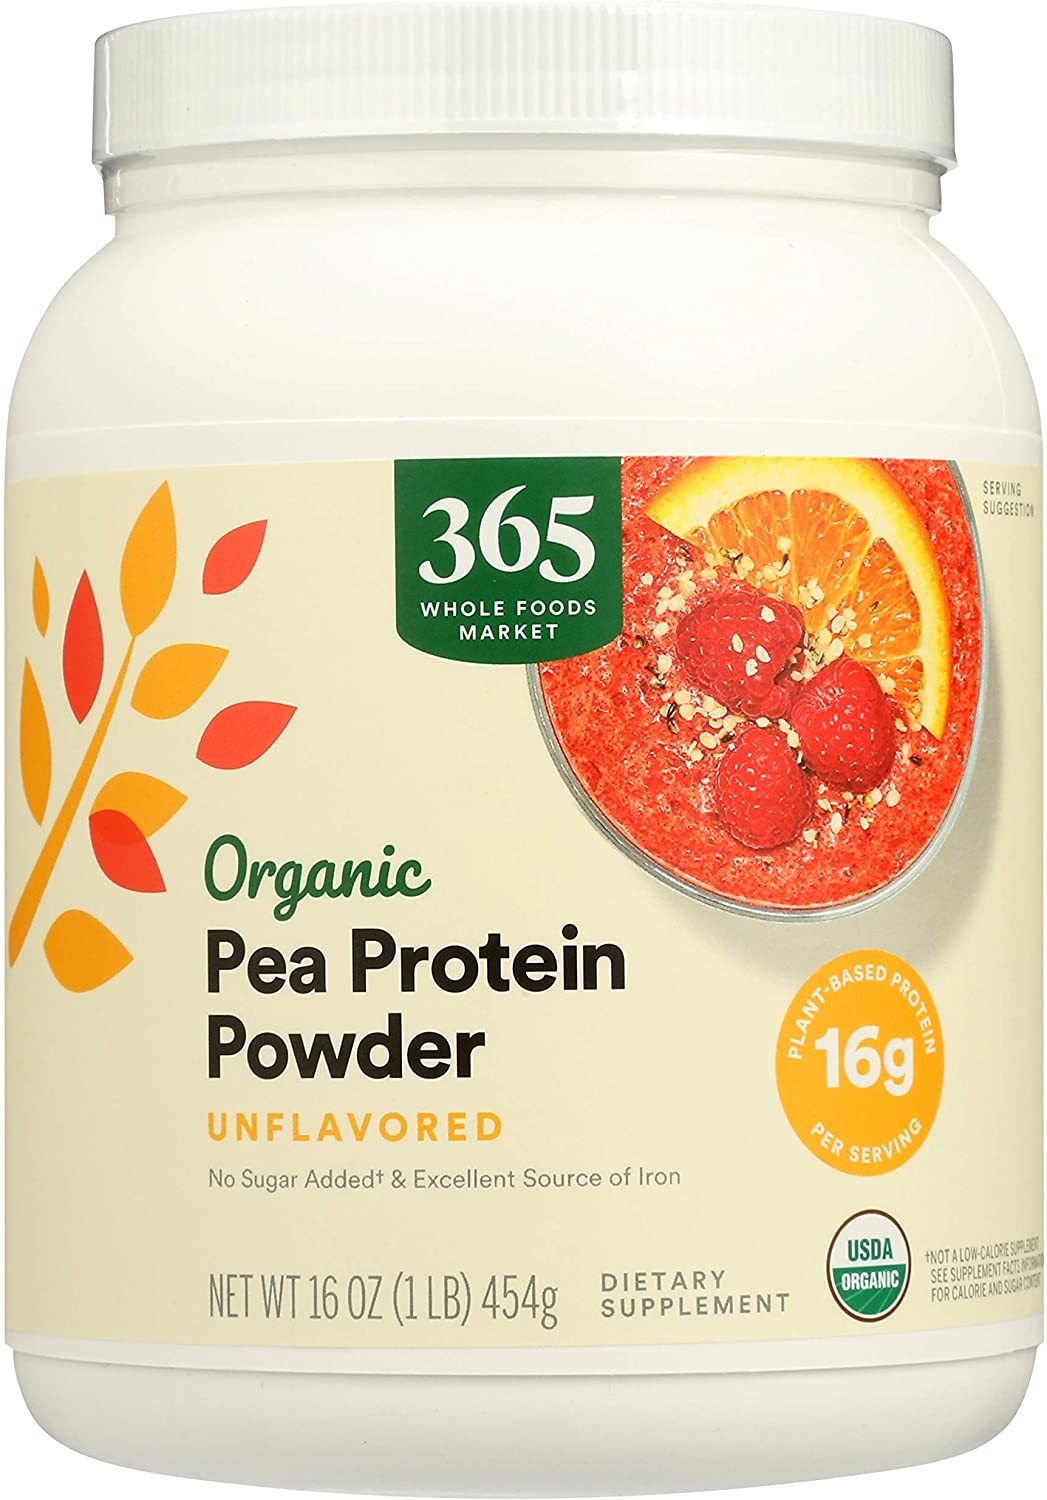 365 by WFM New Shipping Free 4 years warranty Protein Organic Ounce Pea 16